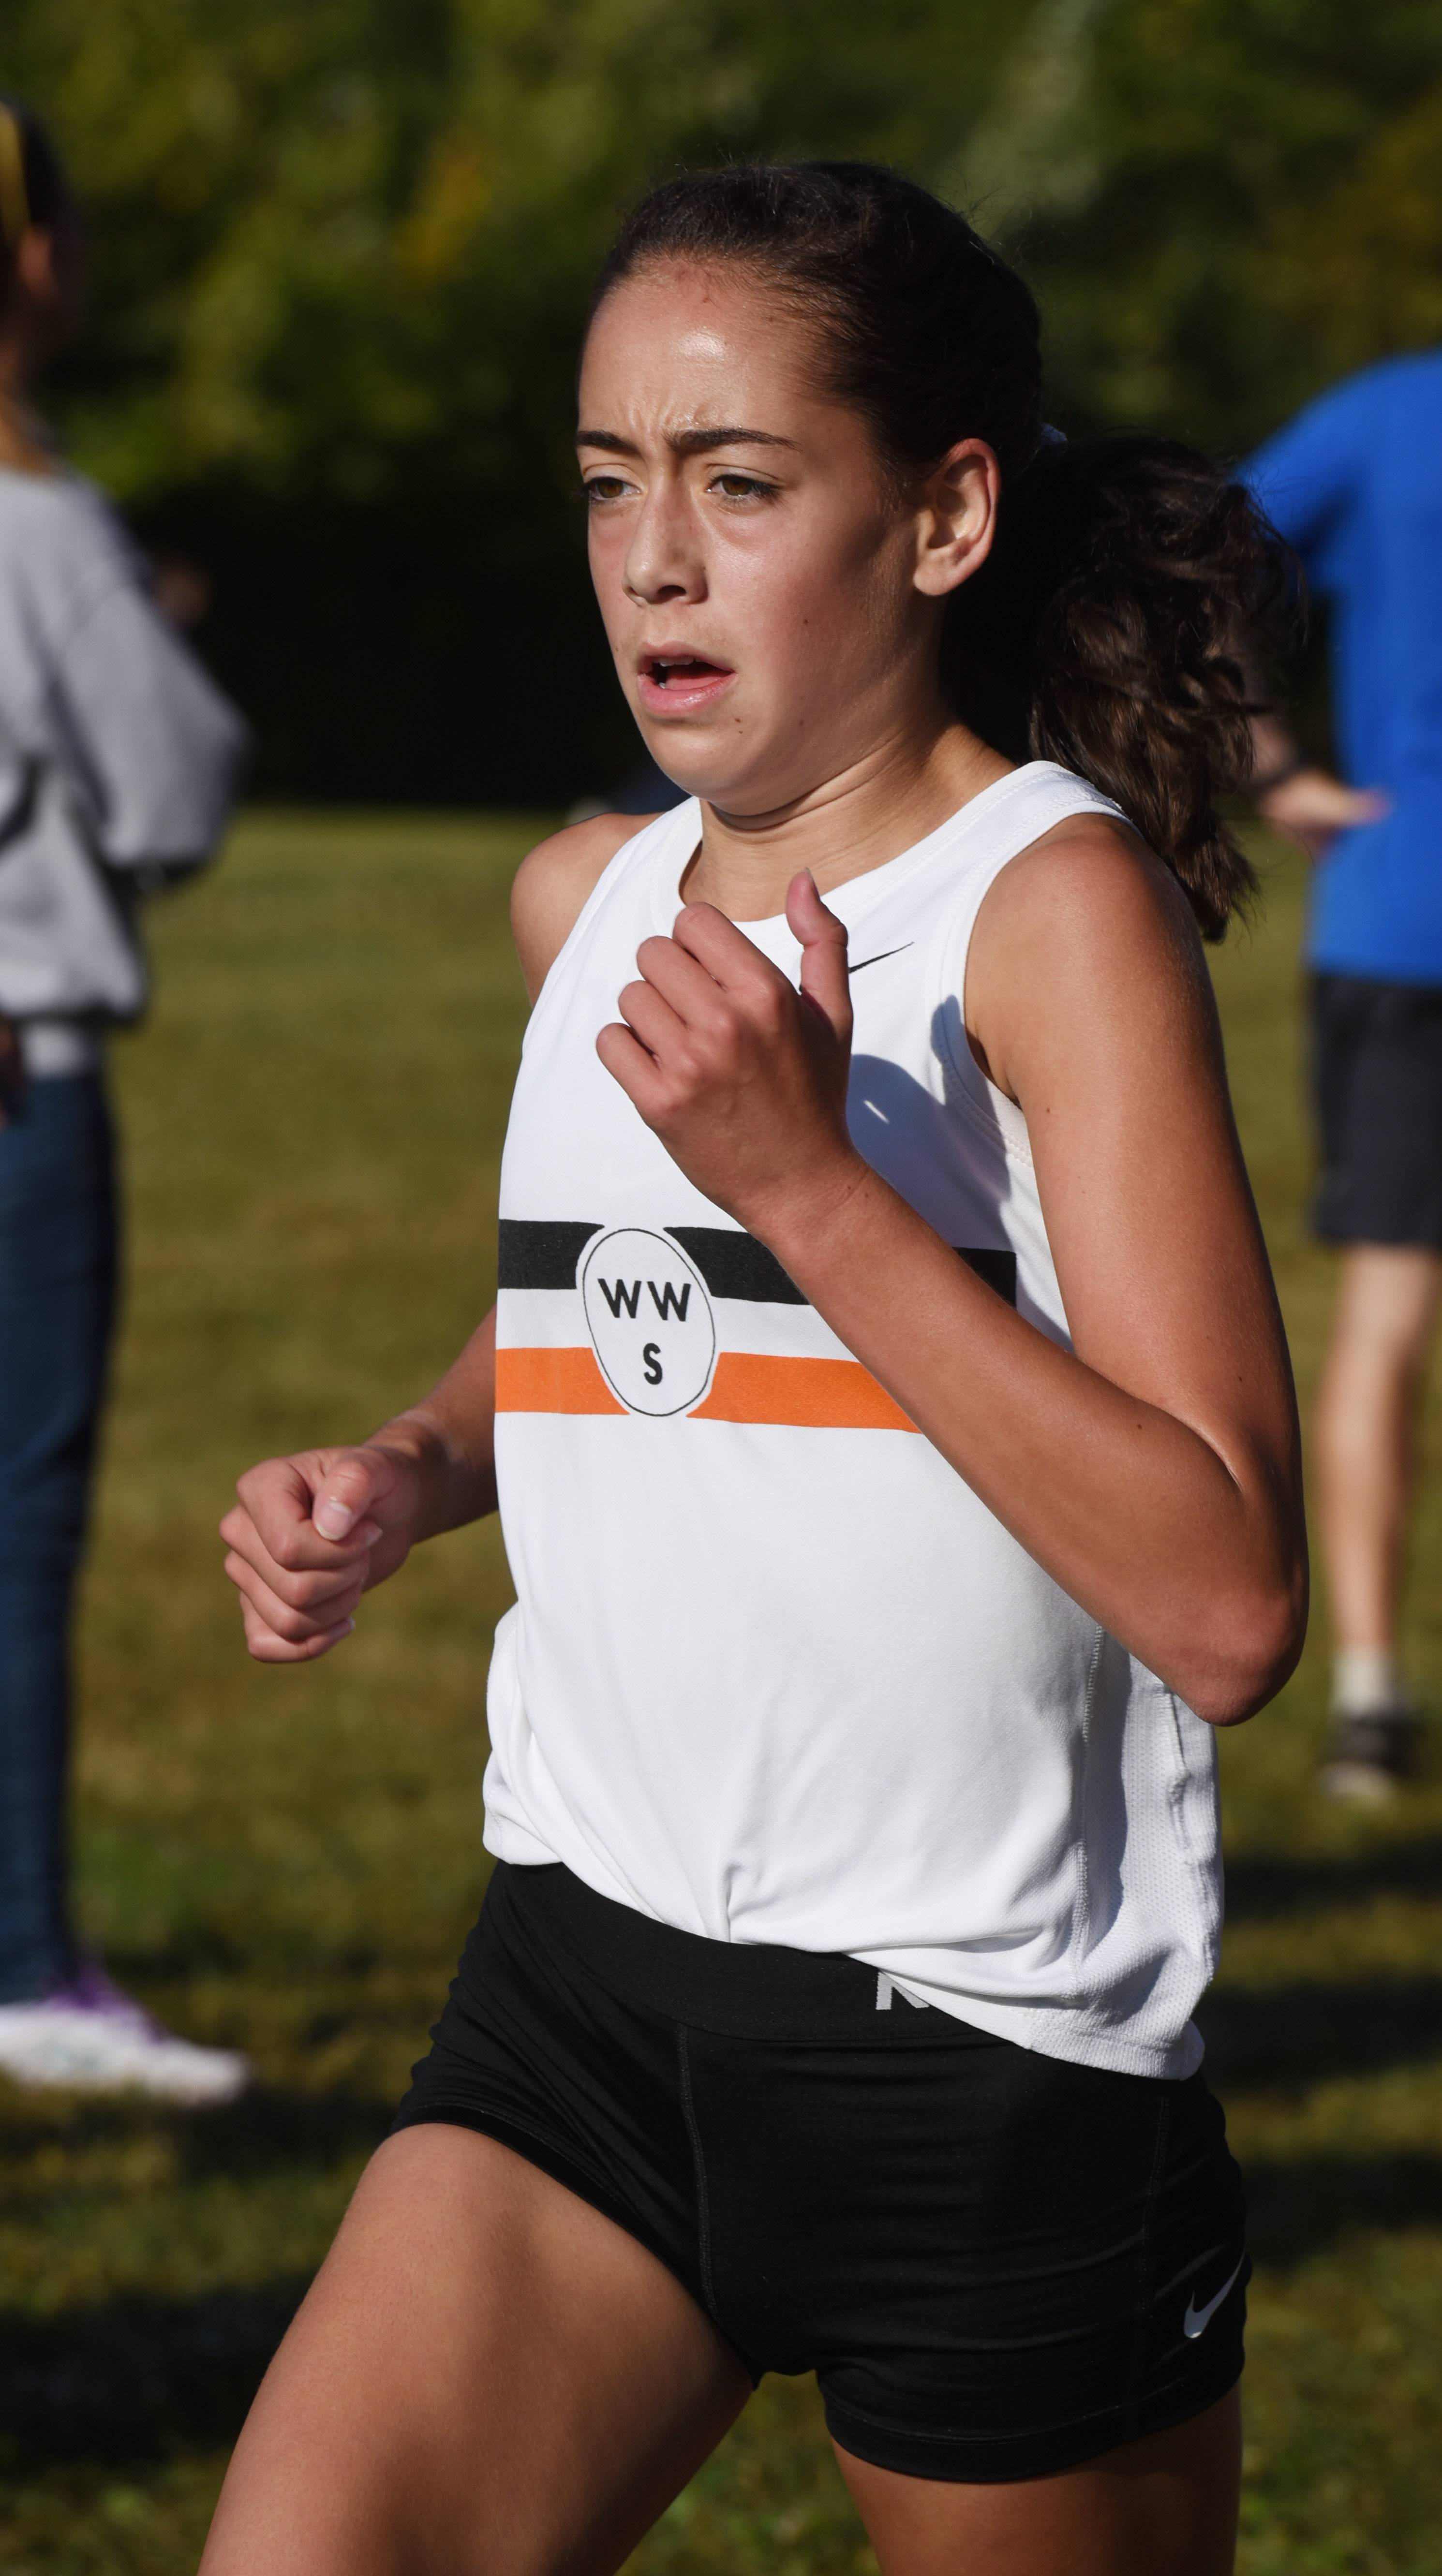 Wheaton Warrenville South's Maria Rucoba wins the Wauconda cross-country invite at Matthews Middle School in Island Lake Saturday.